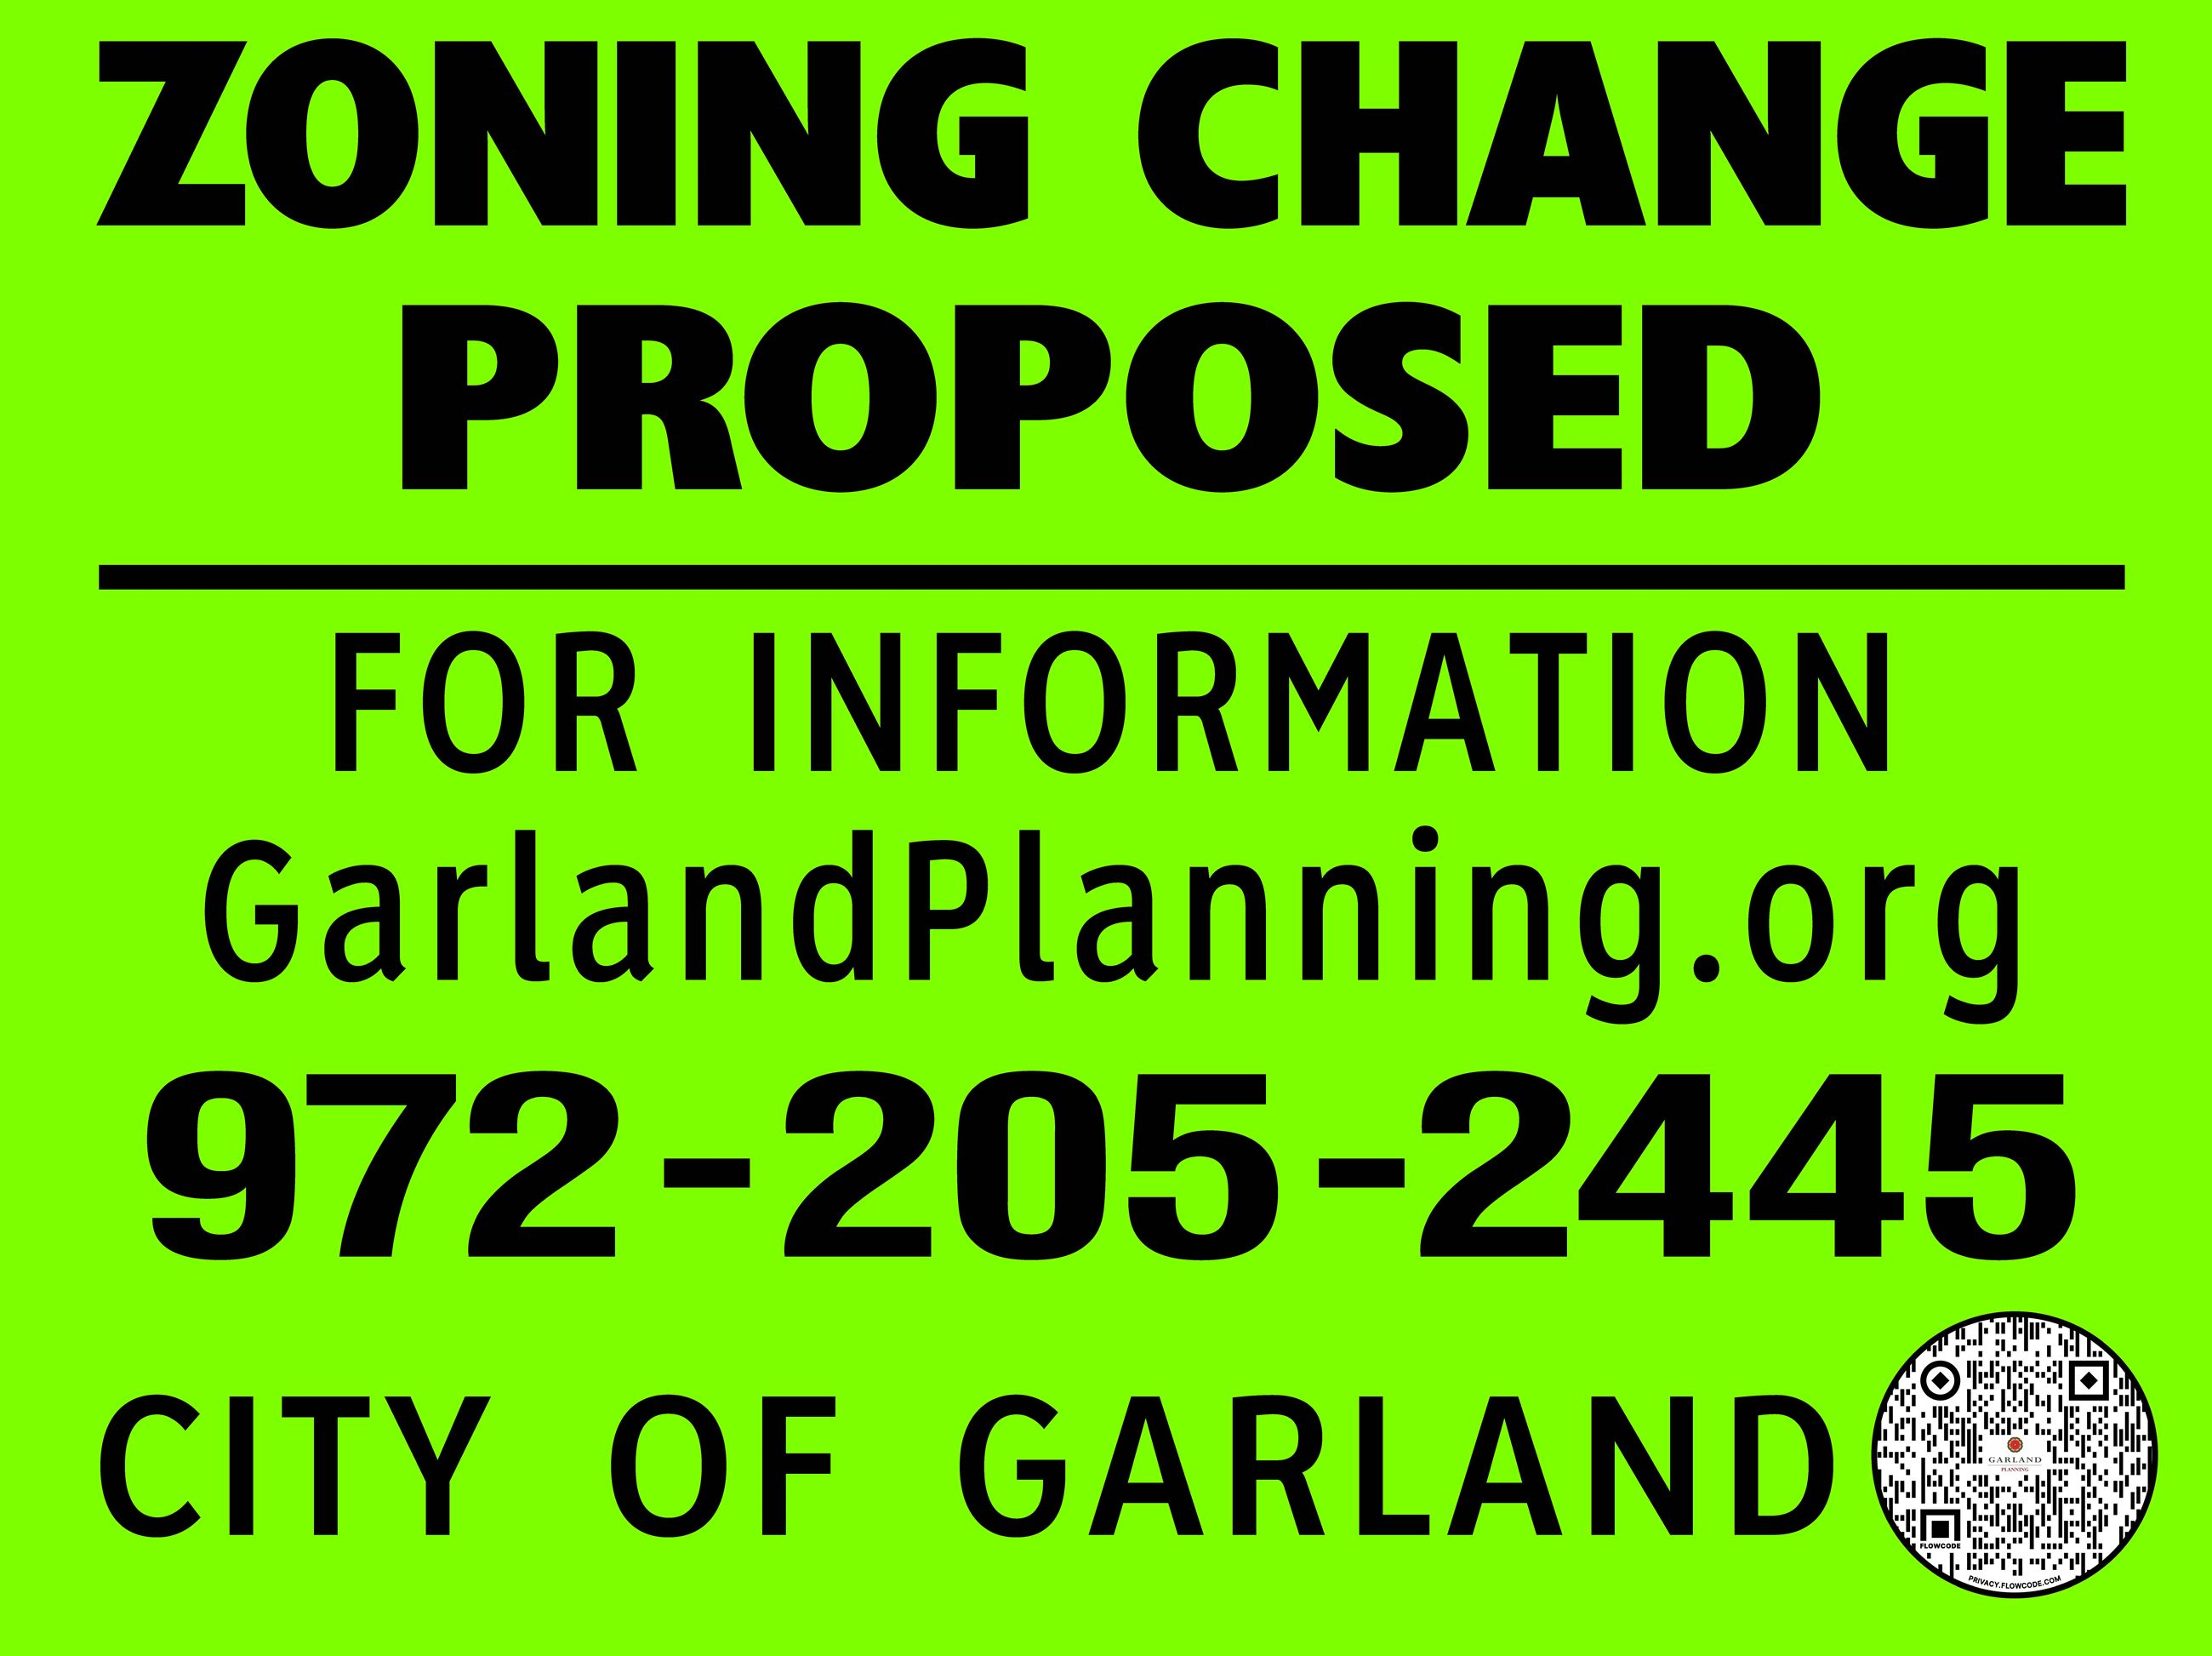 Zoning Change Sample 10A 2 Final QR